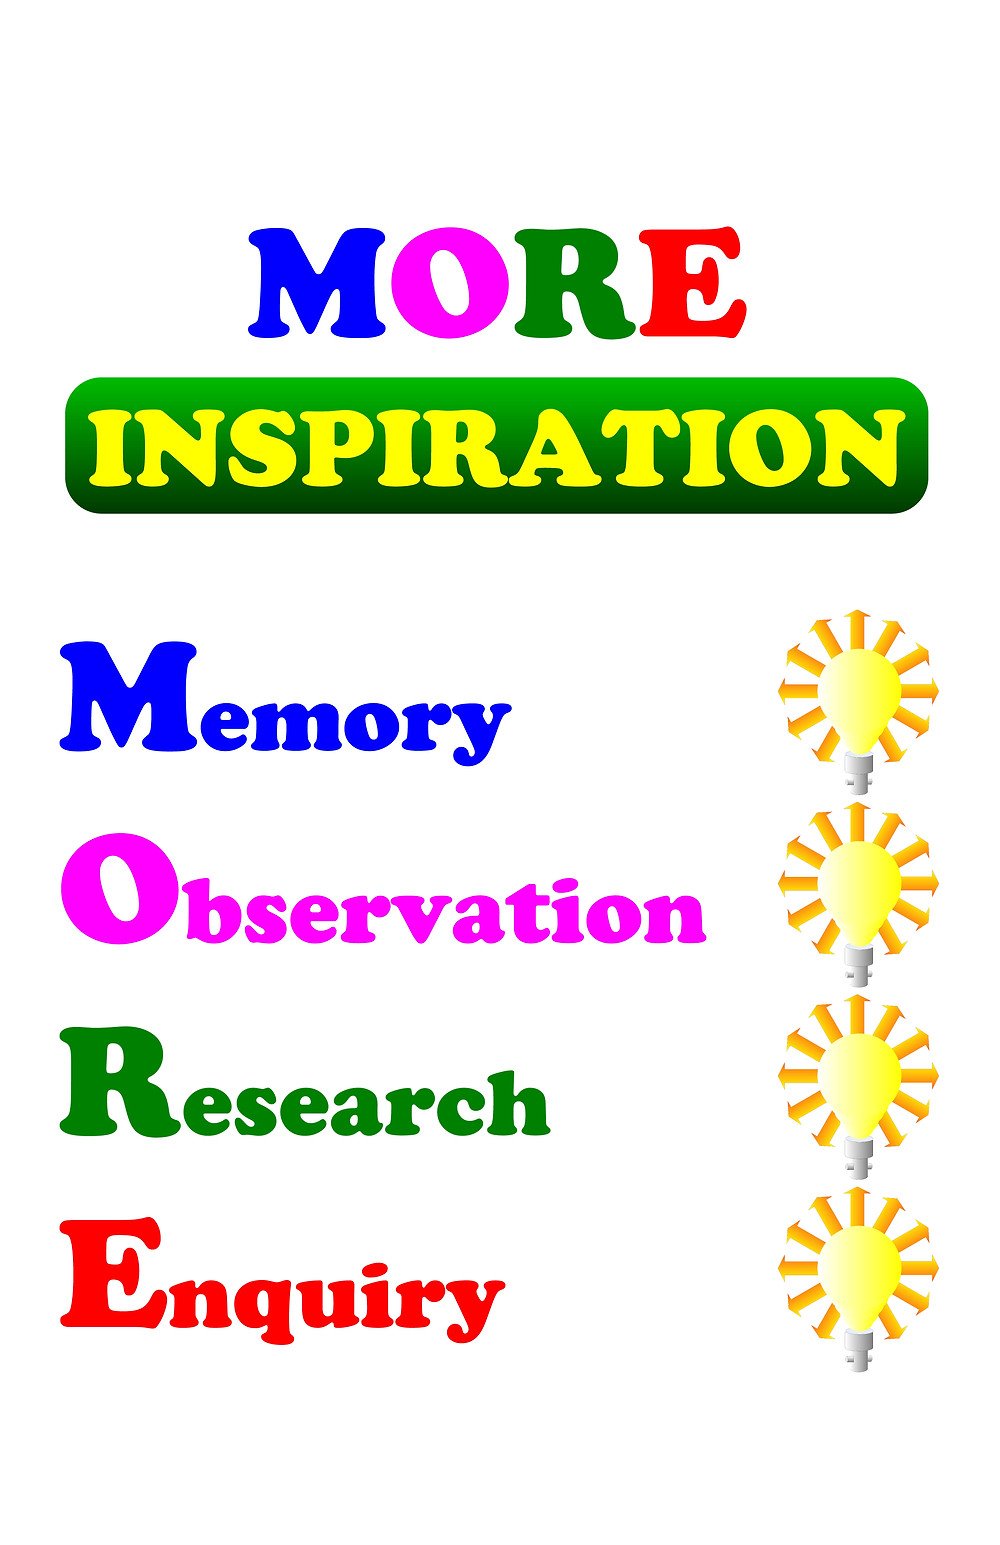 Graphic representation of acronym MORE - Memory, Observation, Research, Enquiry